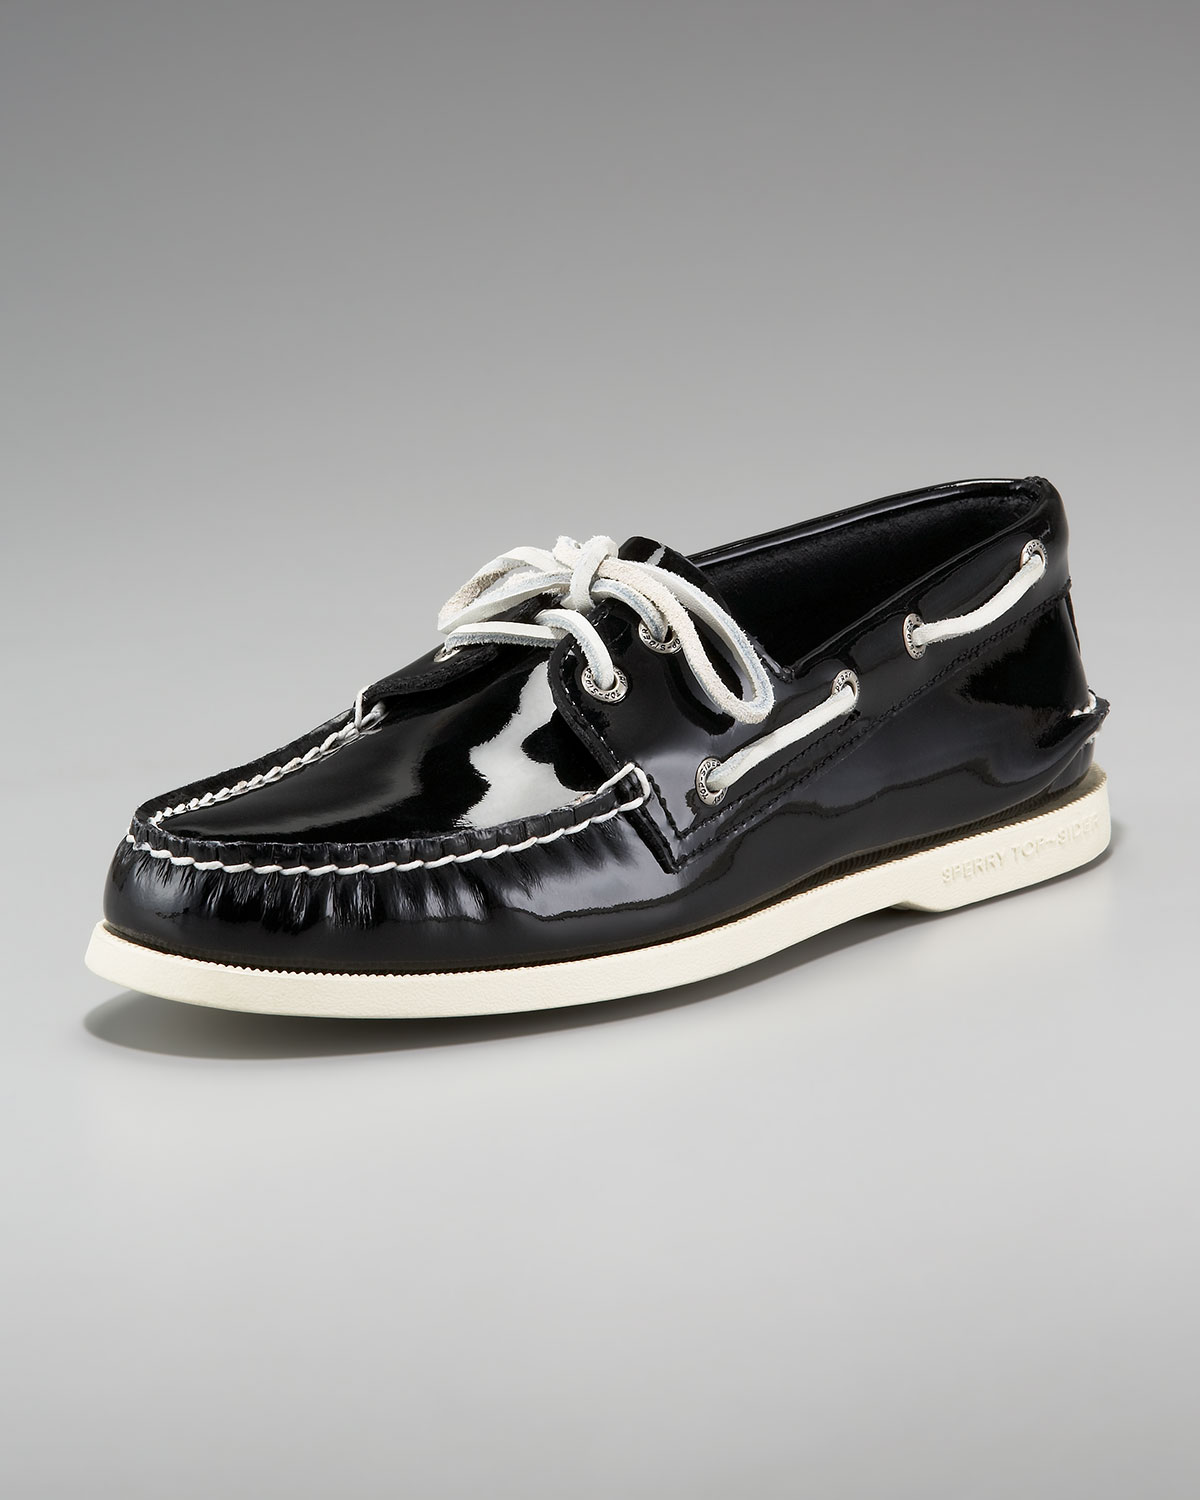 e8dbbfdf145 Lyst - Sperry Top-Sider Ao Patent Boat Shoe in Black for Men